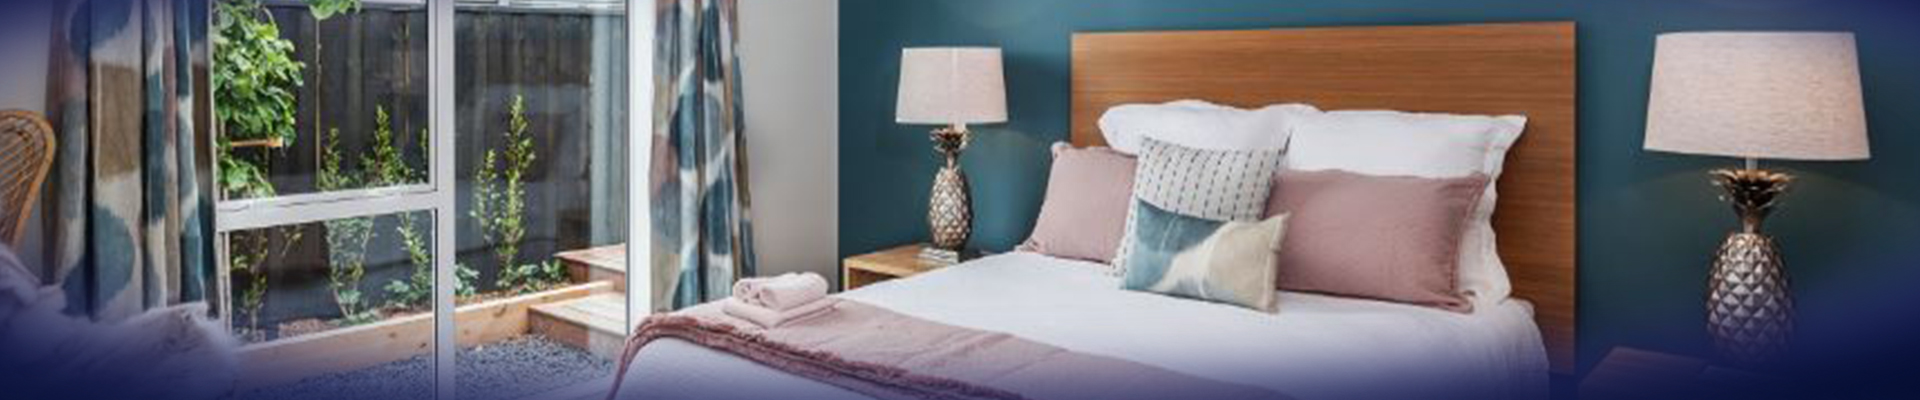 Hallmark Homes Christchurch The Lochy Master Bedroom header - Design Tips for Creating the Perfect Master Bedroom